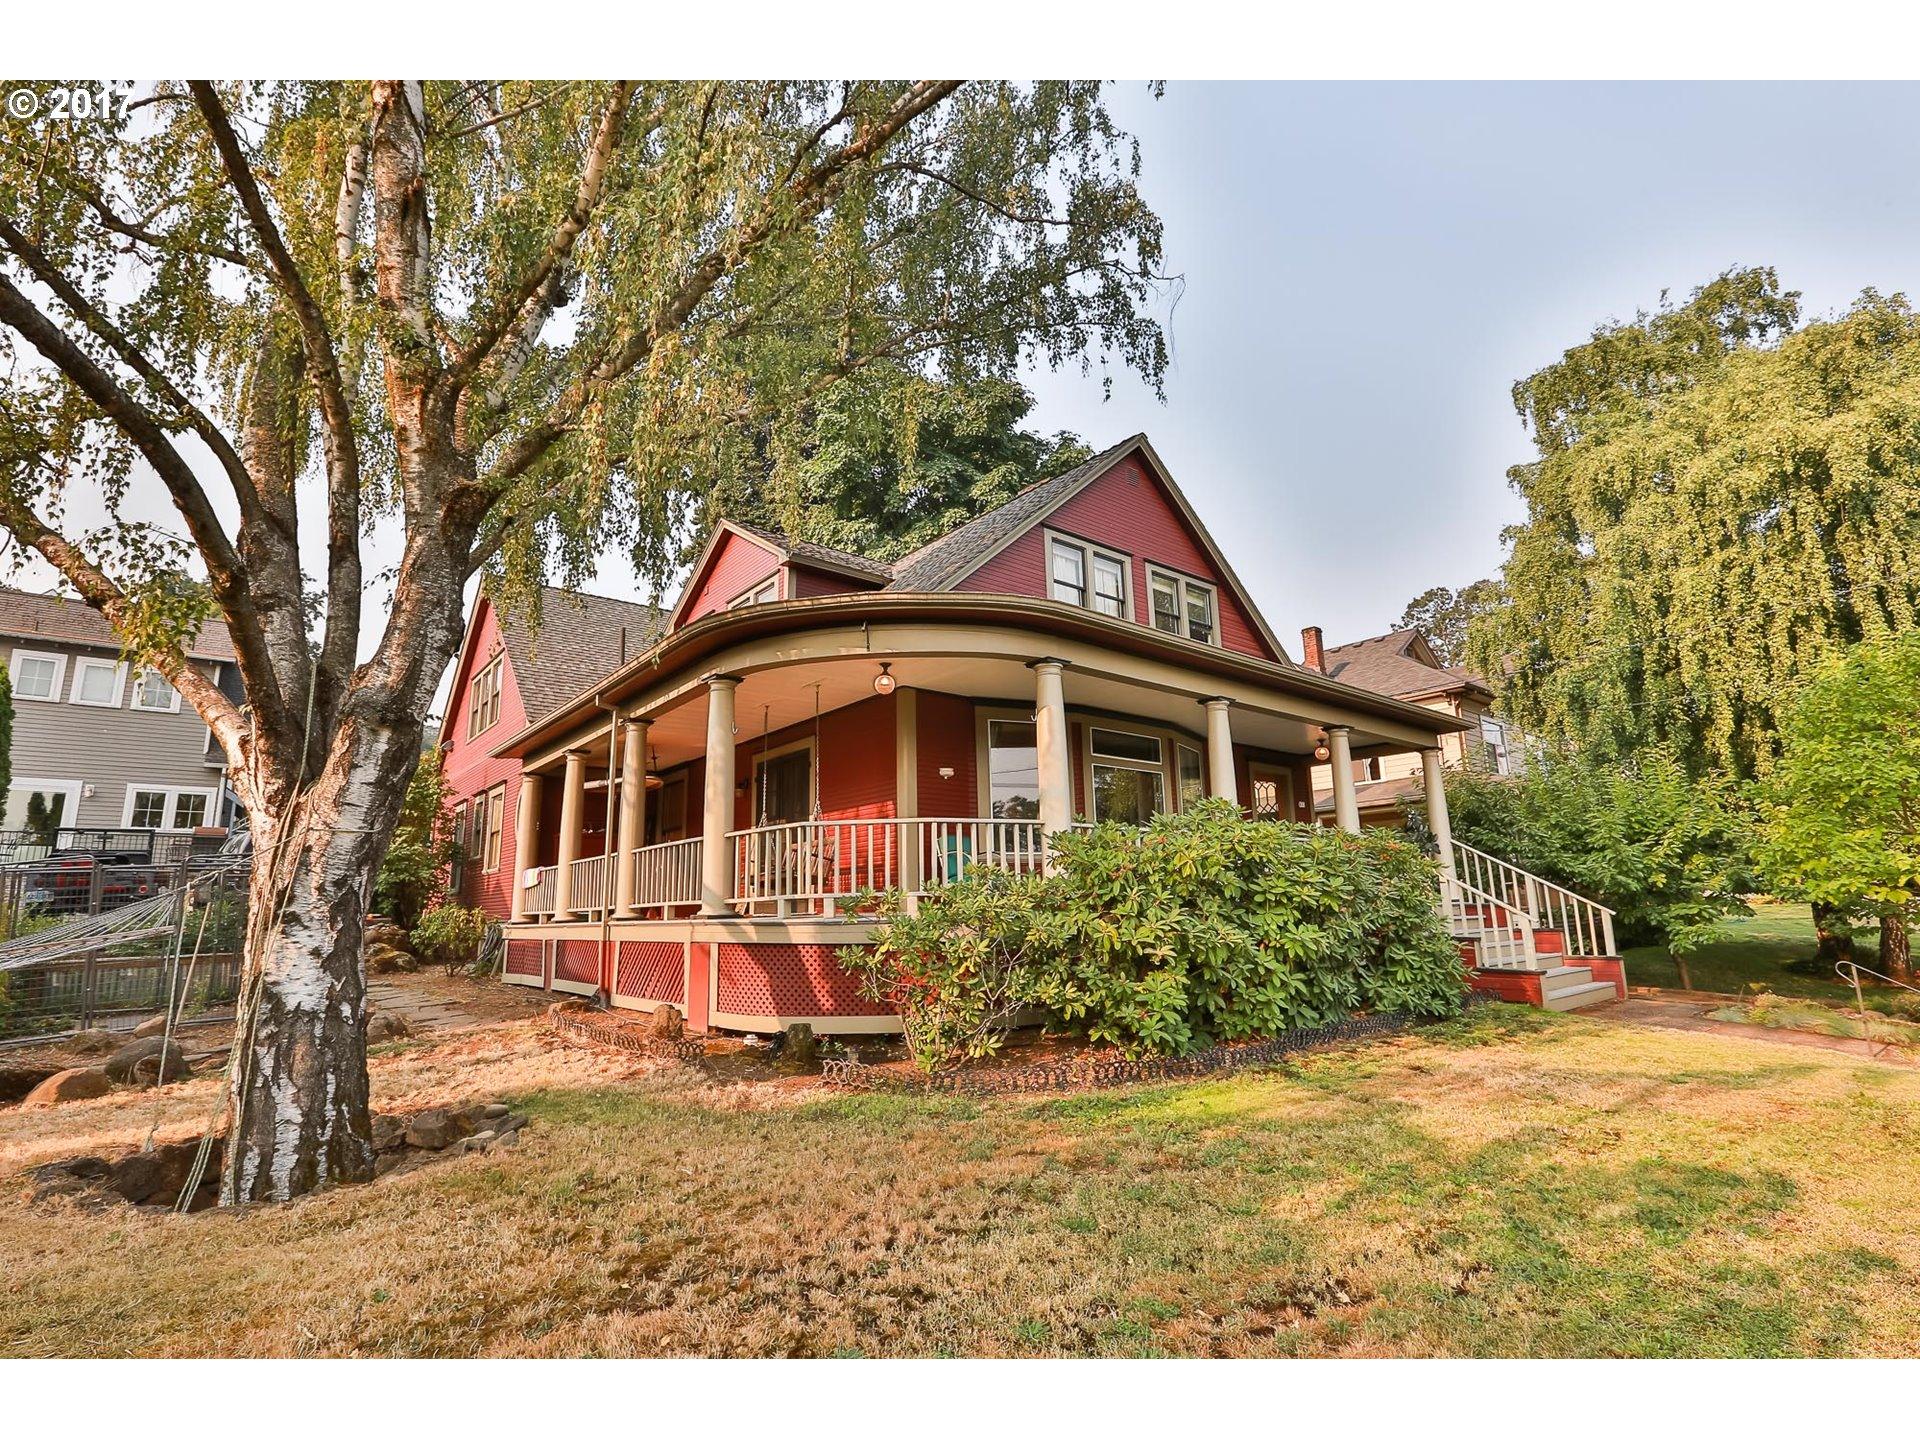 811 OAK, Hood River, OR 97031